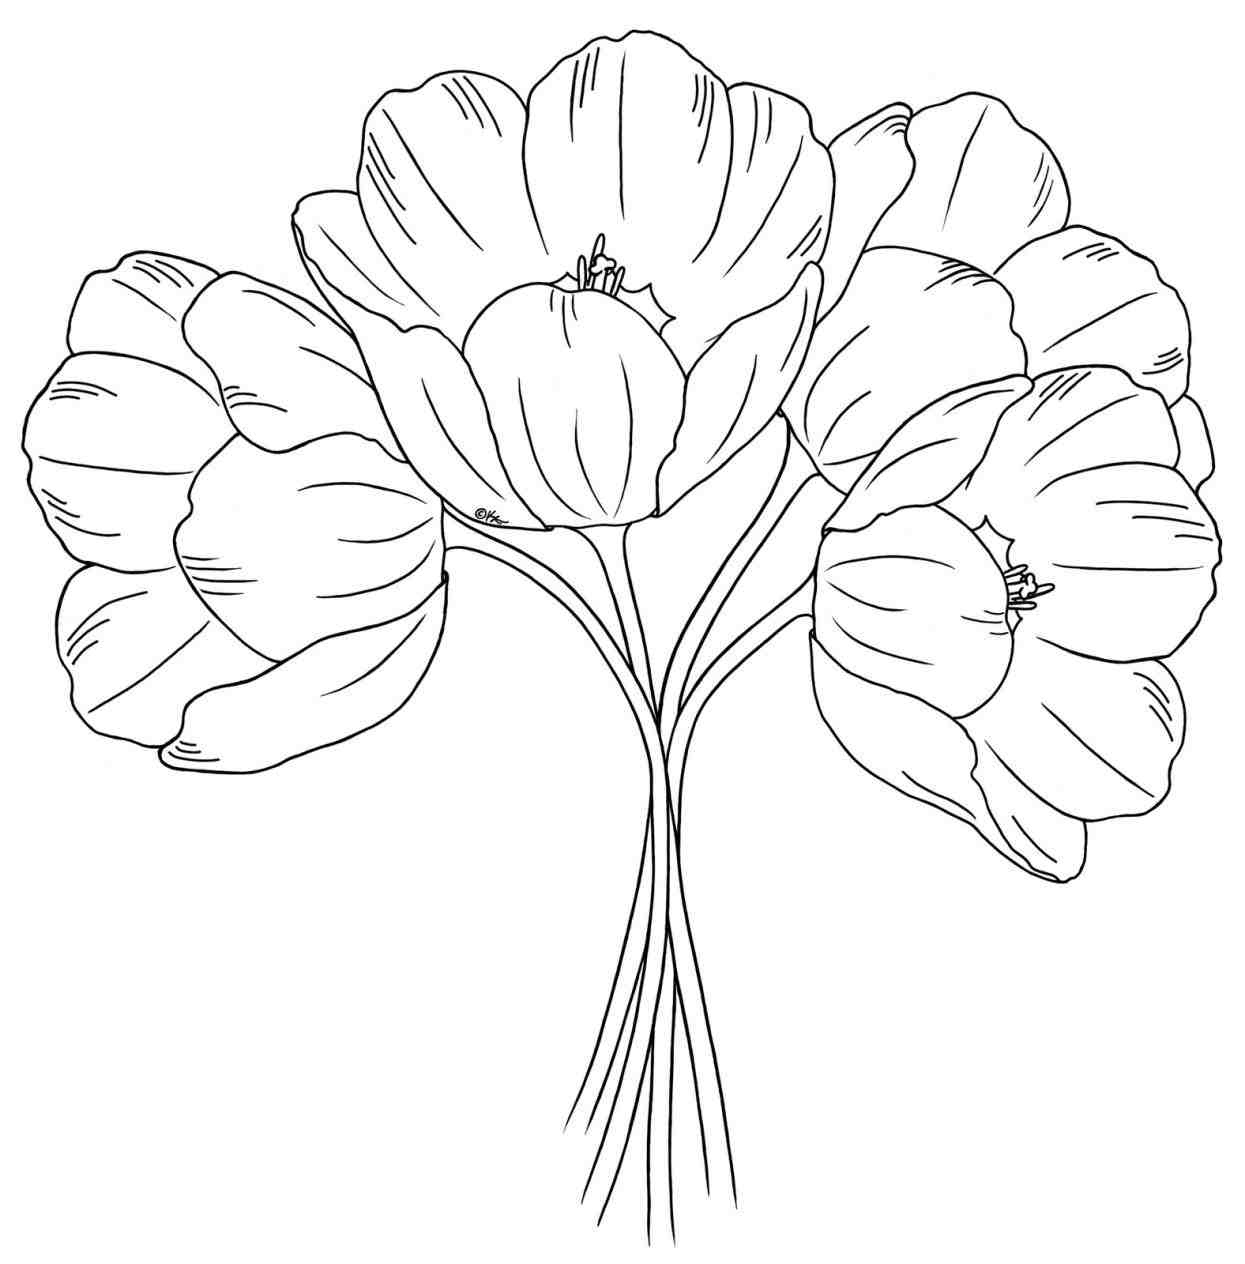 how to draw bunch of flowers step by step the best free tulip drawing images download from 525 free of step by to bunch how step draw flowers